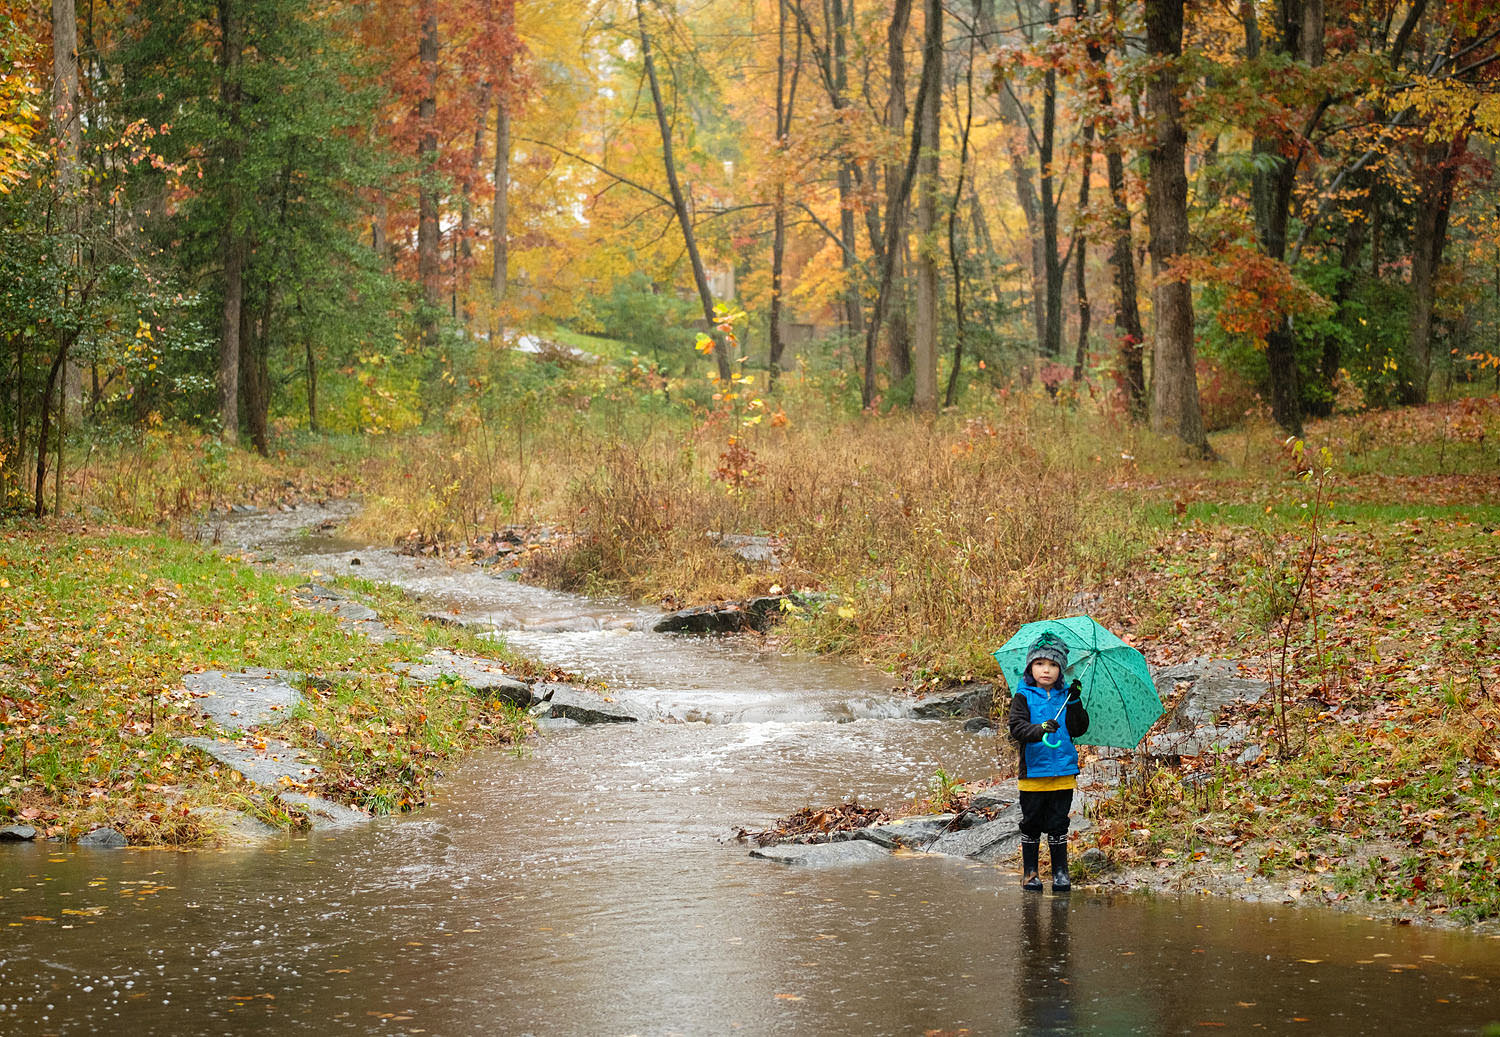 Boy playing in the rain at a stream